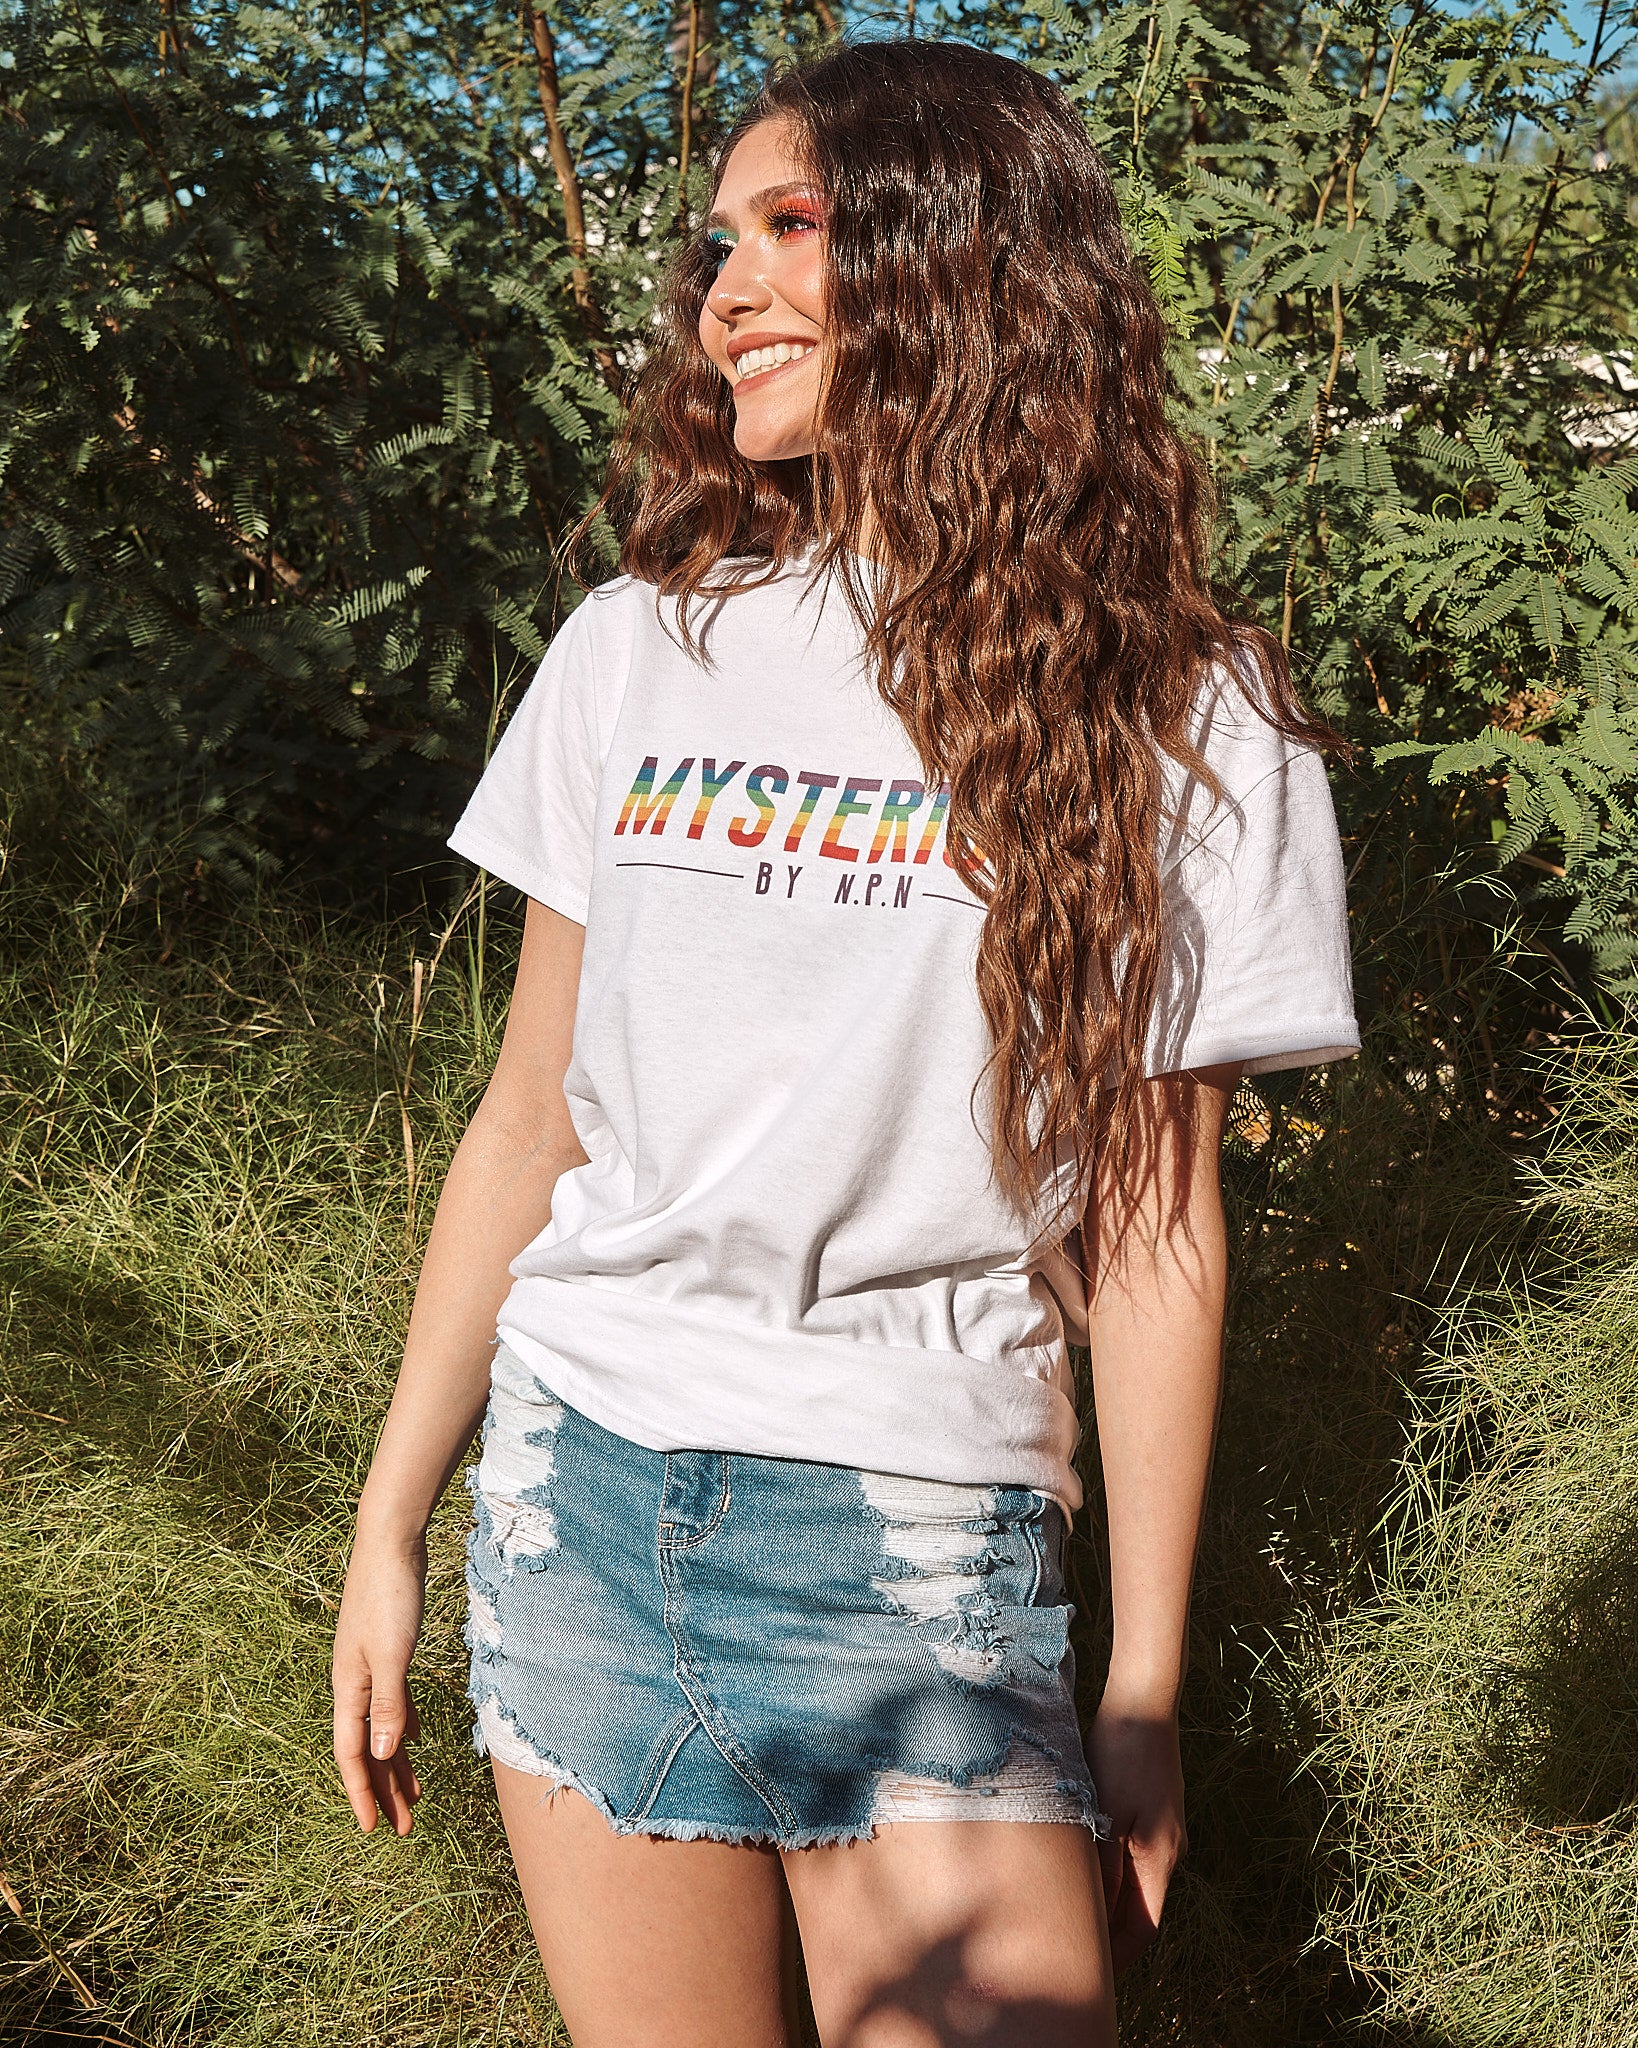 RAINBOW Mysterious T-Shirt UNISEX